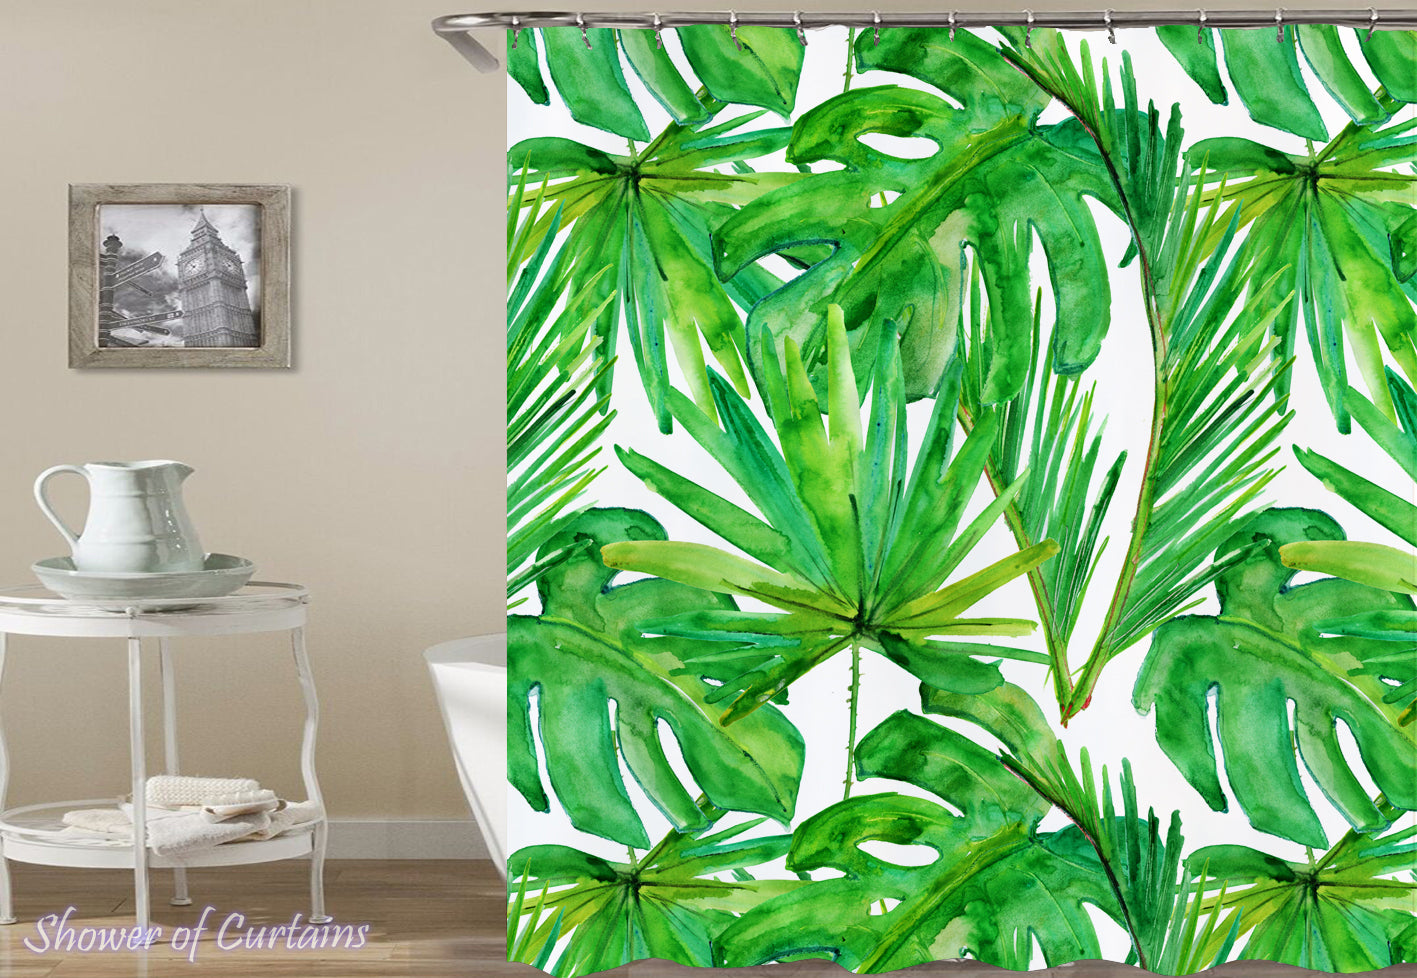 Shower Curtains | Green Leaves Drawing – Shower of Curtains